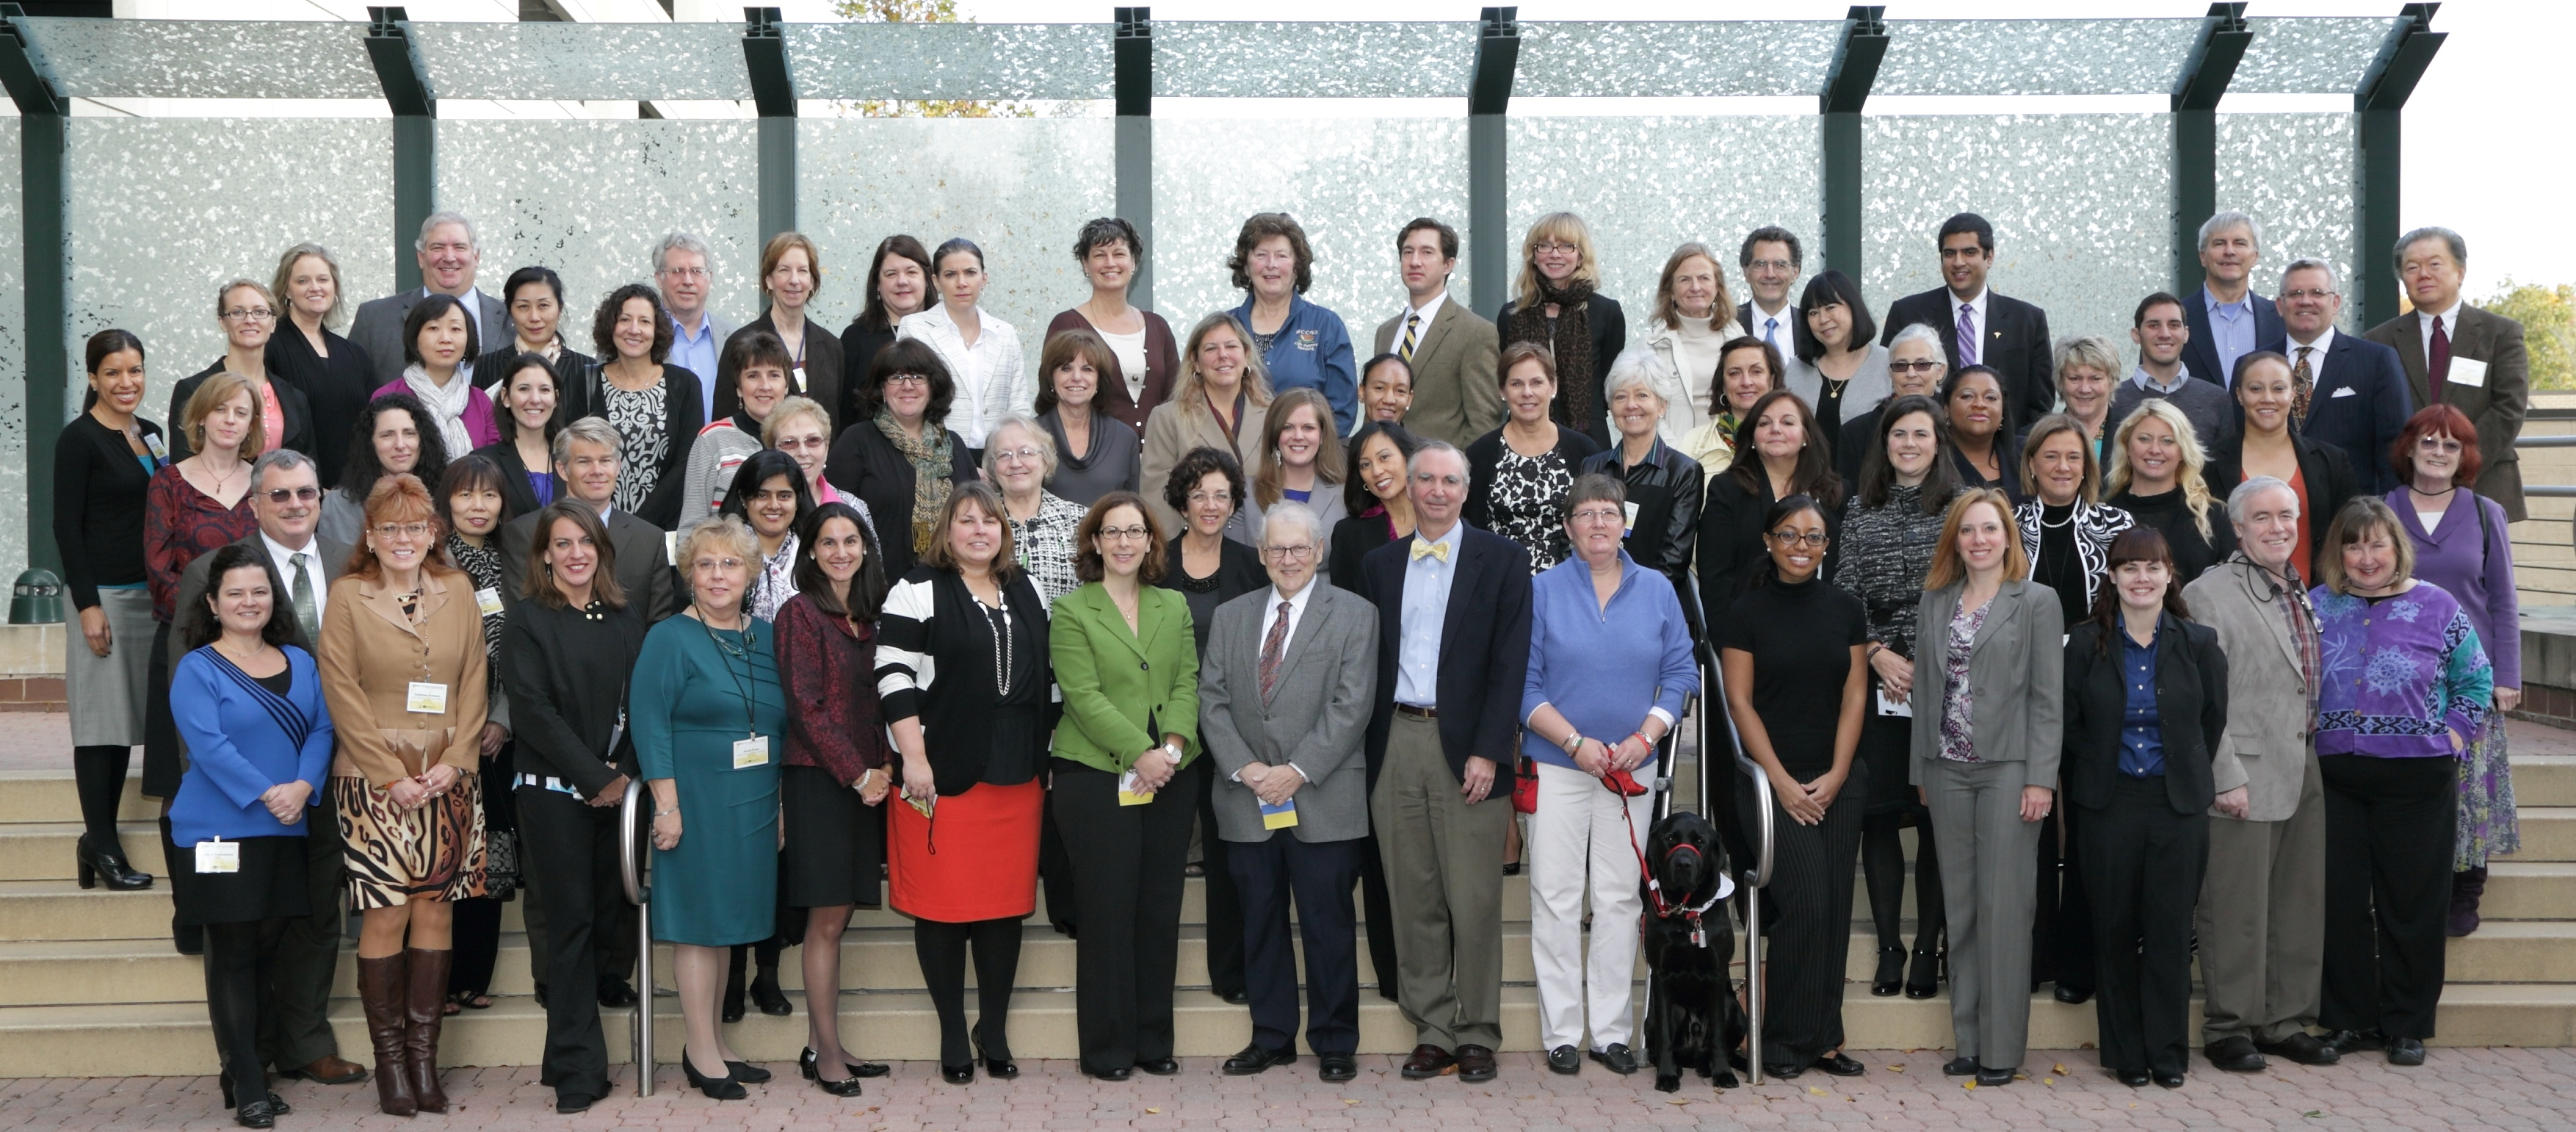 Group photo: Attendees at the NIAMS Coalition 2013 Outreach and Education Day